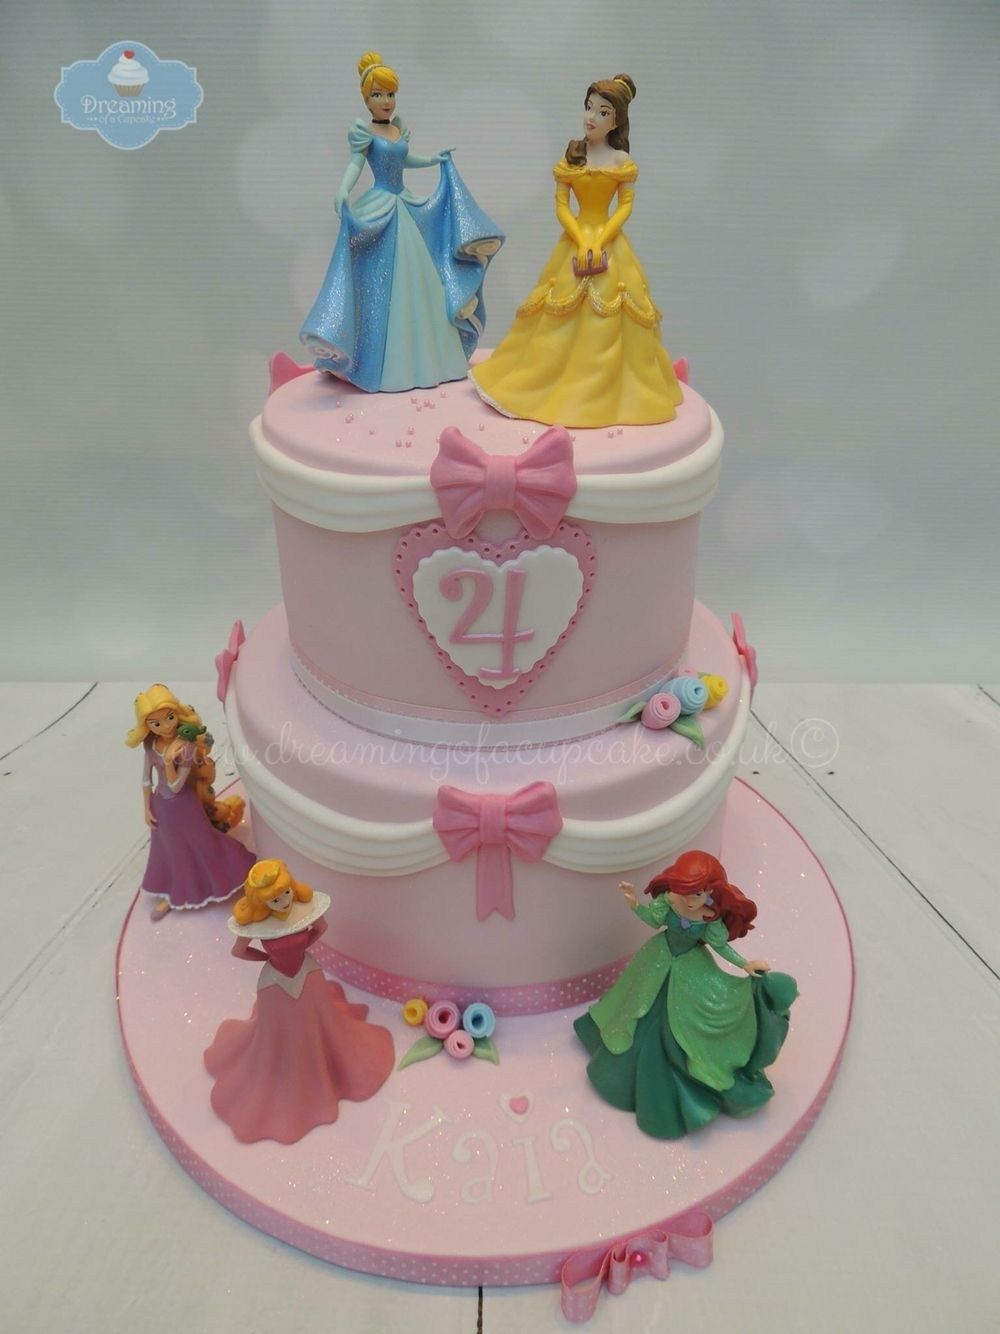 Disney Princess Birthday Cakes Disney Princesses Birthday Cake